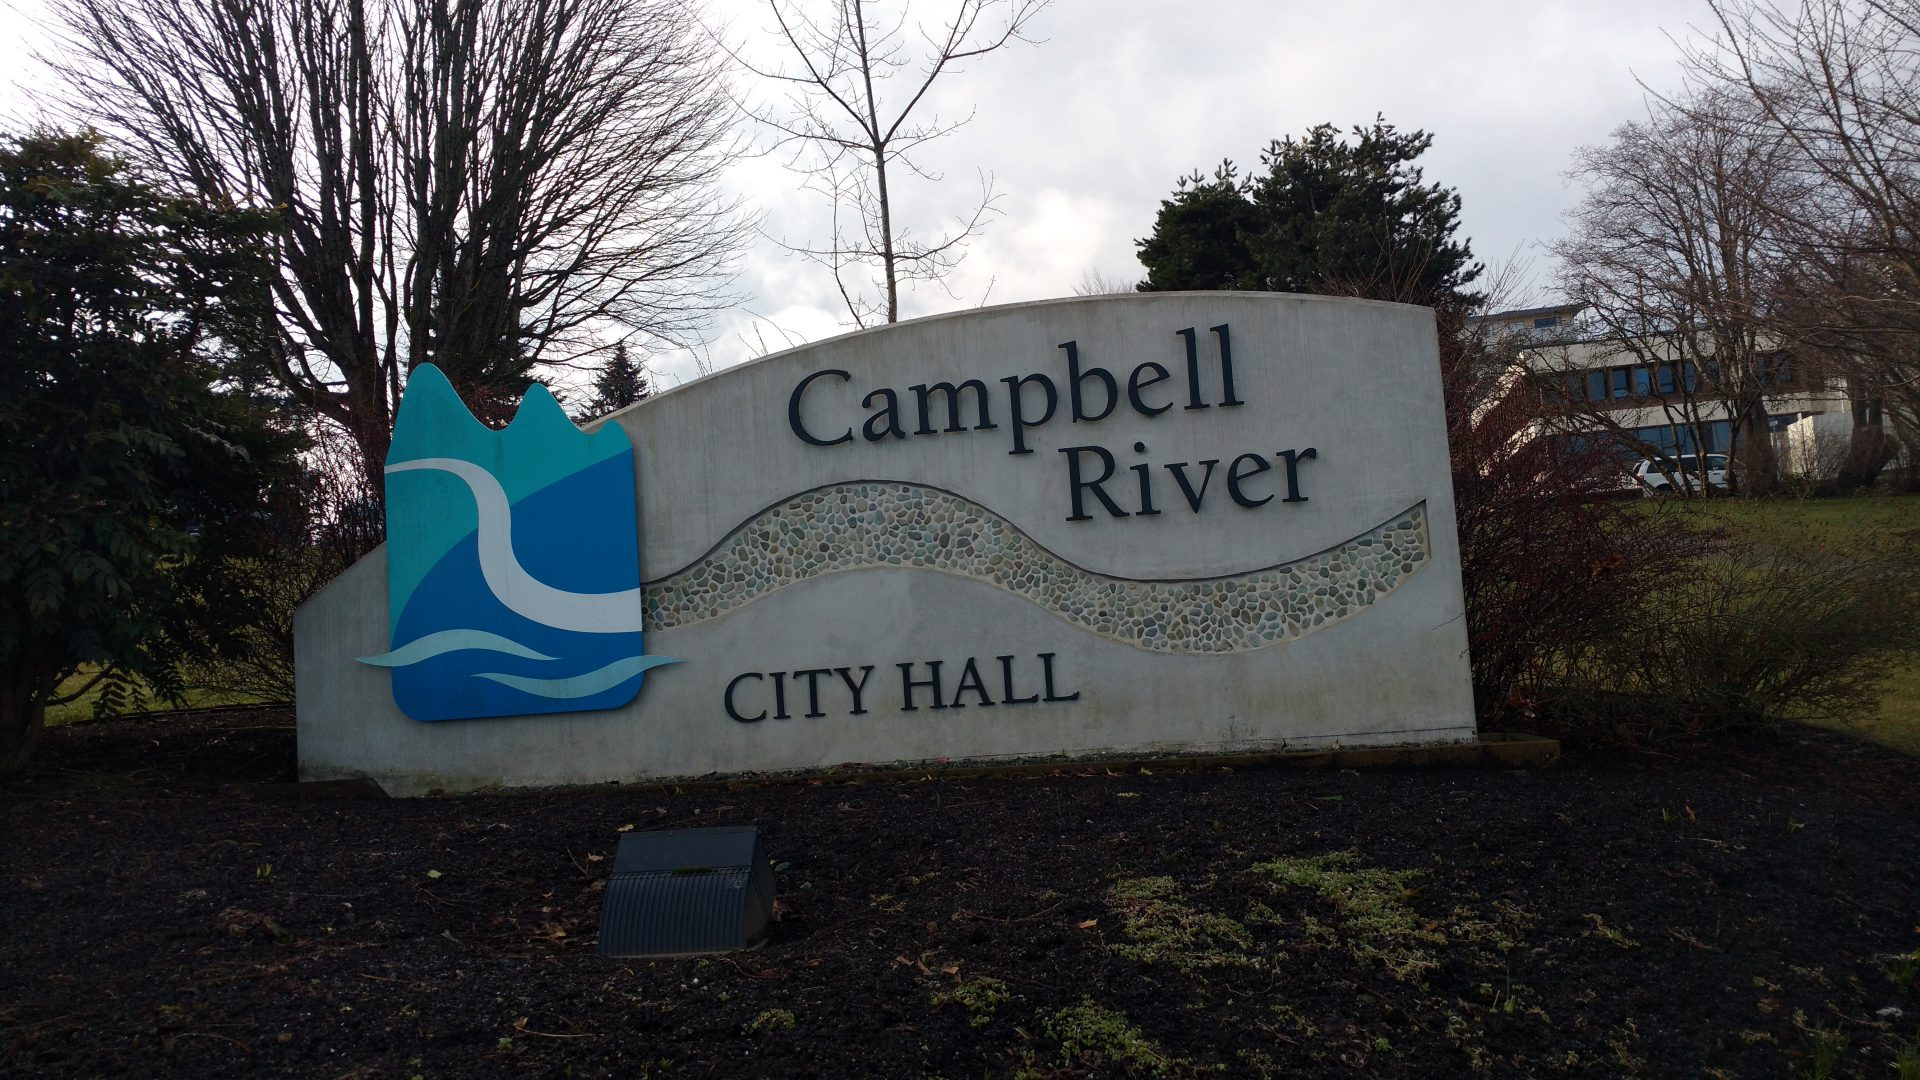 New regional composting facility opening in Campbell River - My Campbell River Now